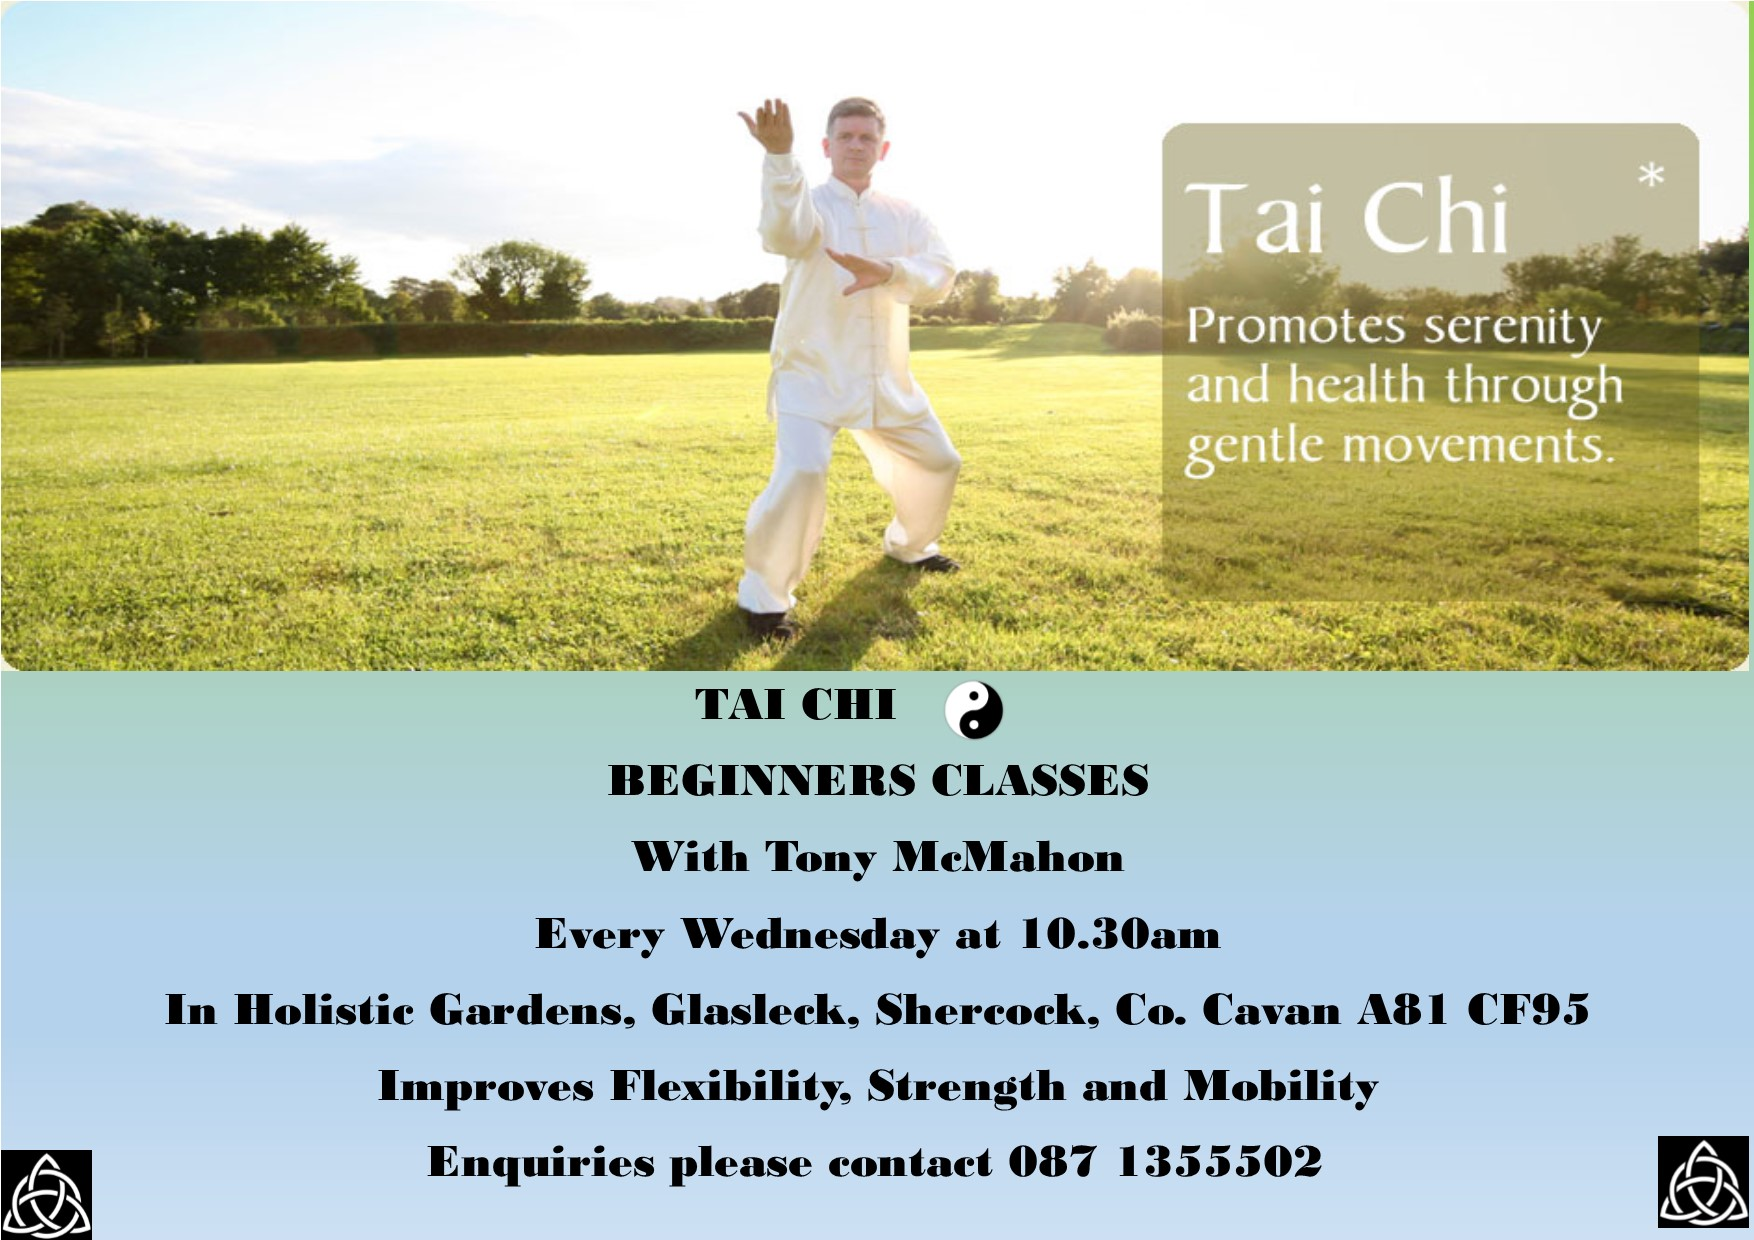 Tai Chi Beginner Classes